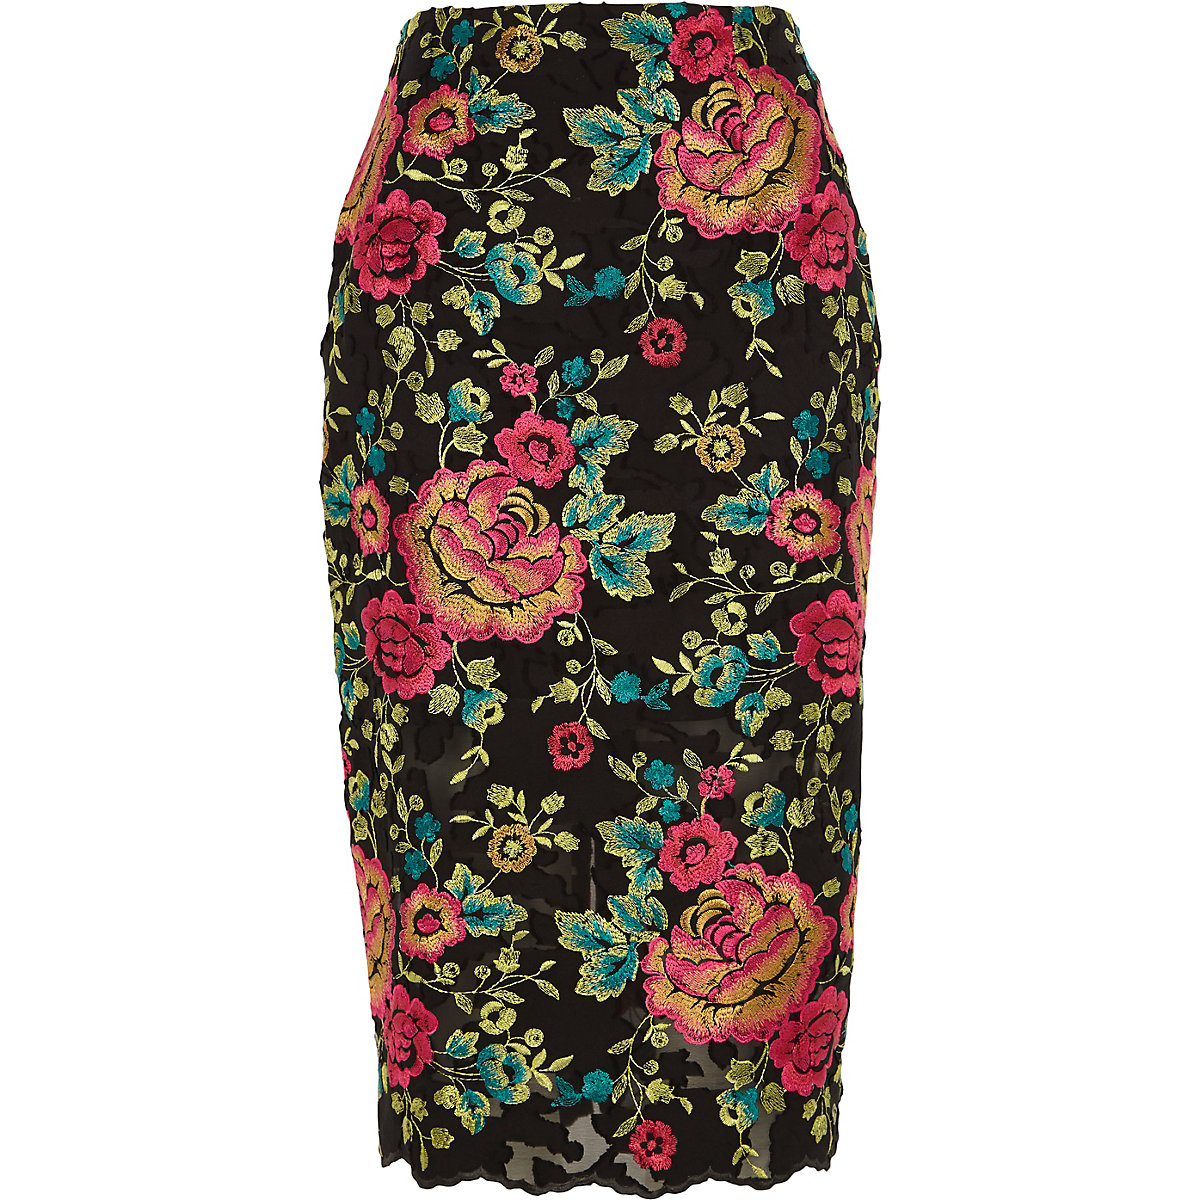 Black floral embroidered pencil skirt